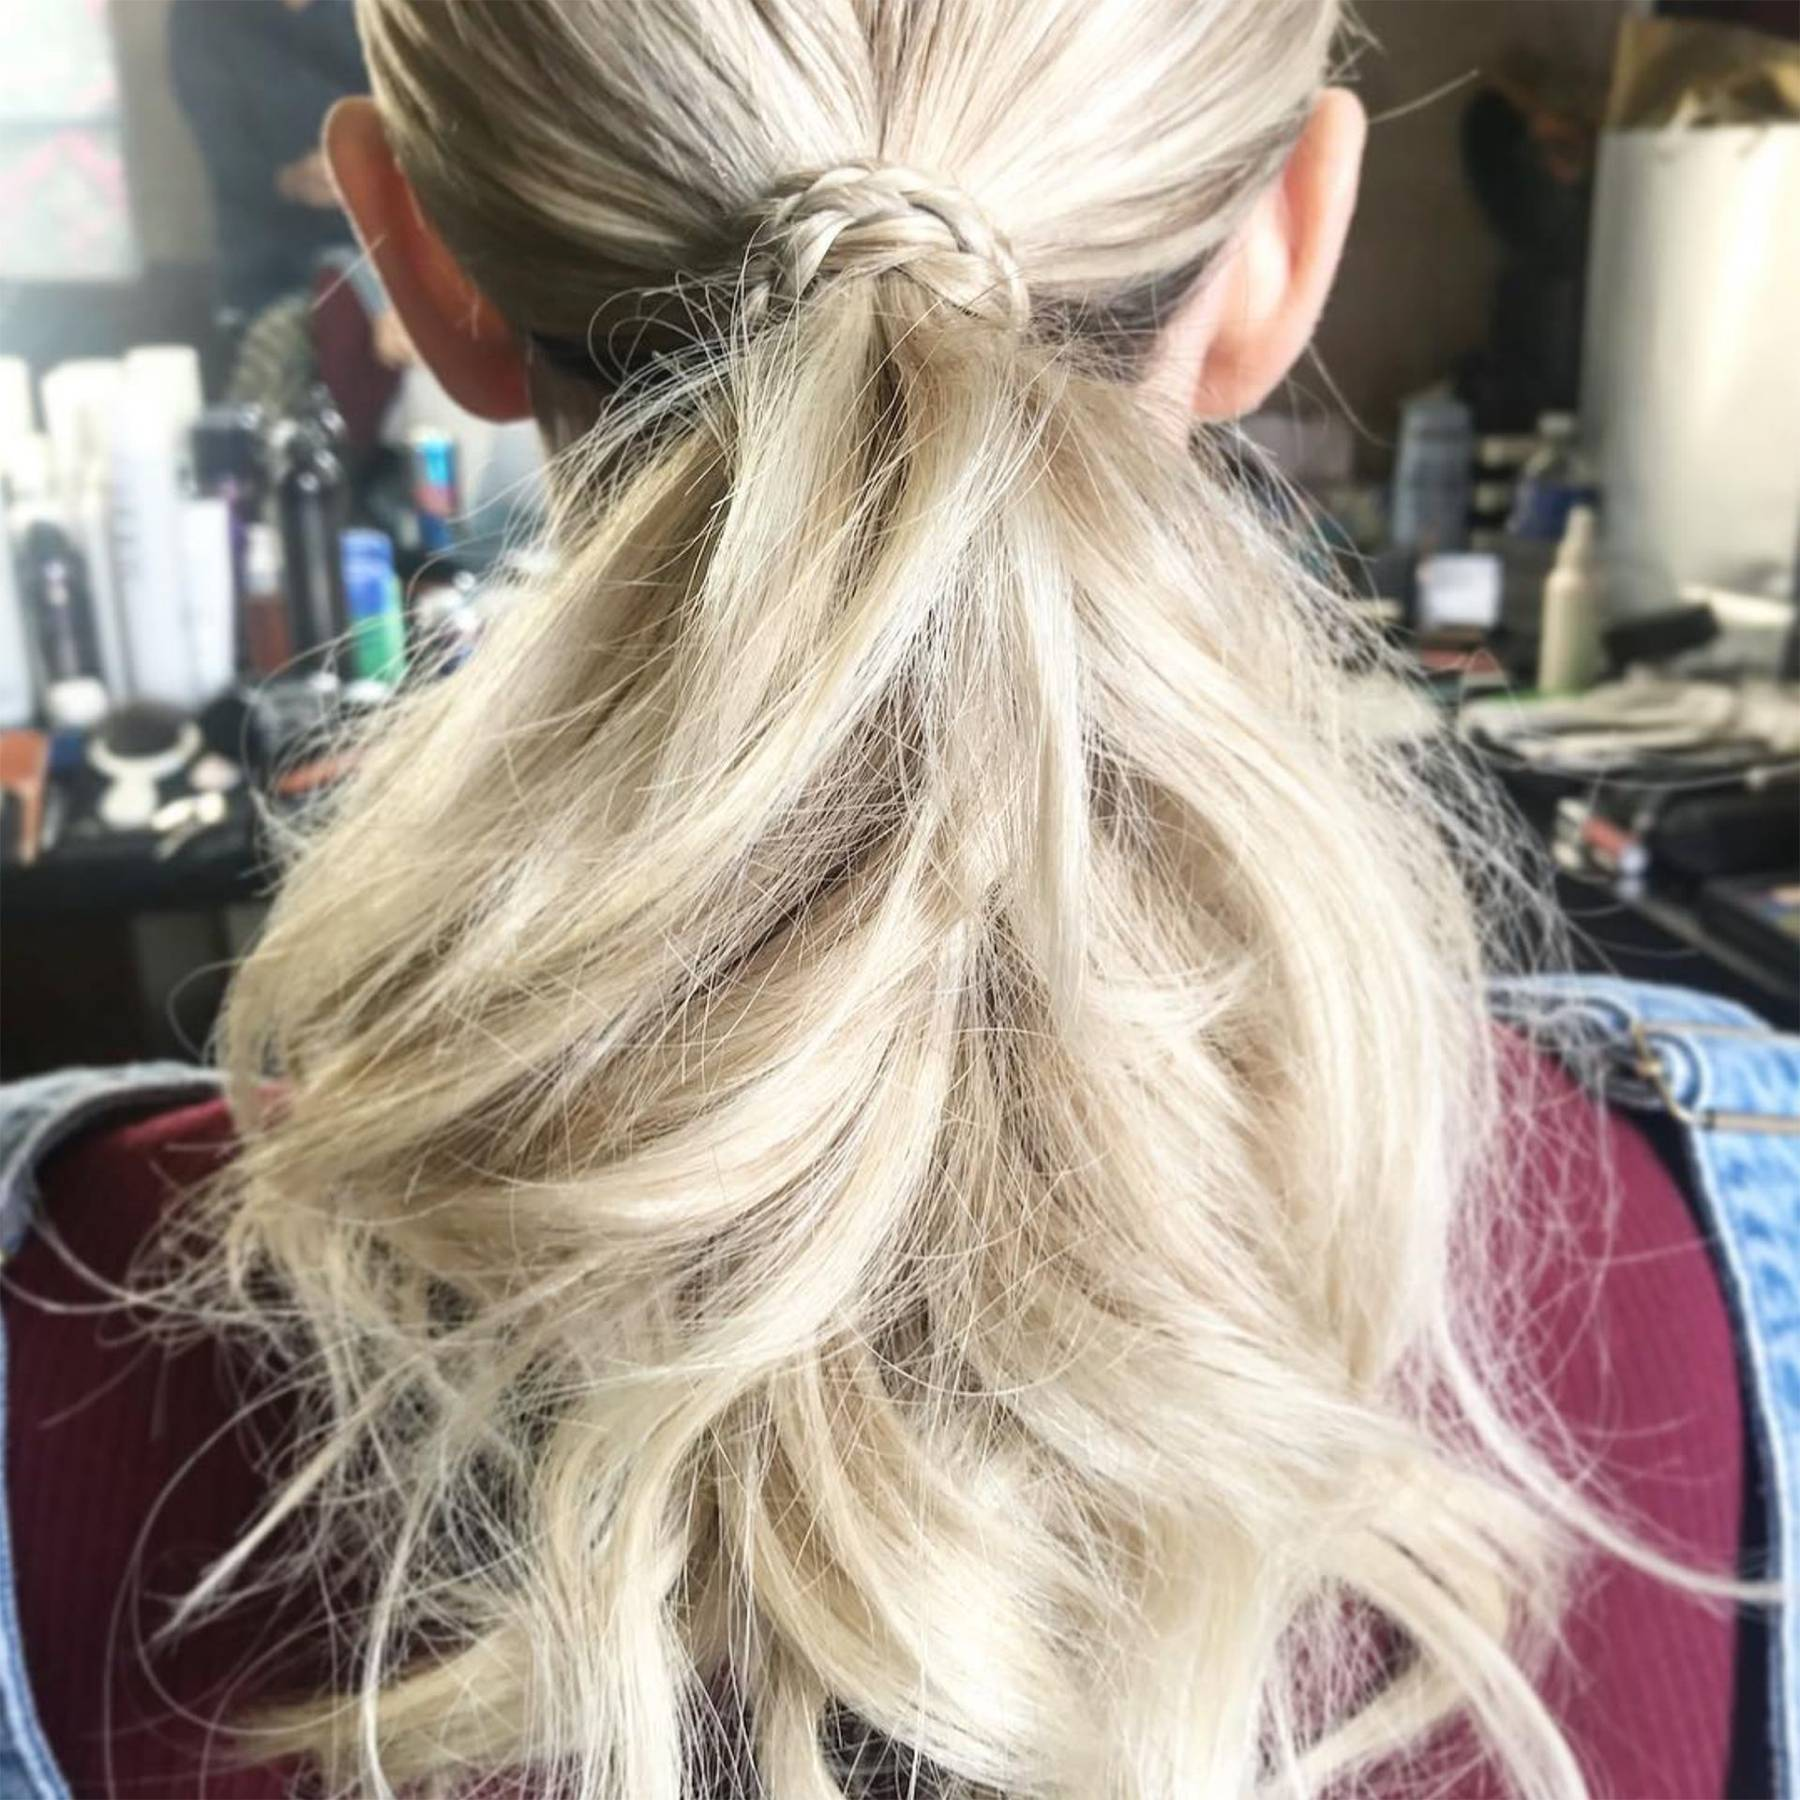 Ponytail Hairstyles 2018: Hair Up Ideas | Glamour UK